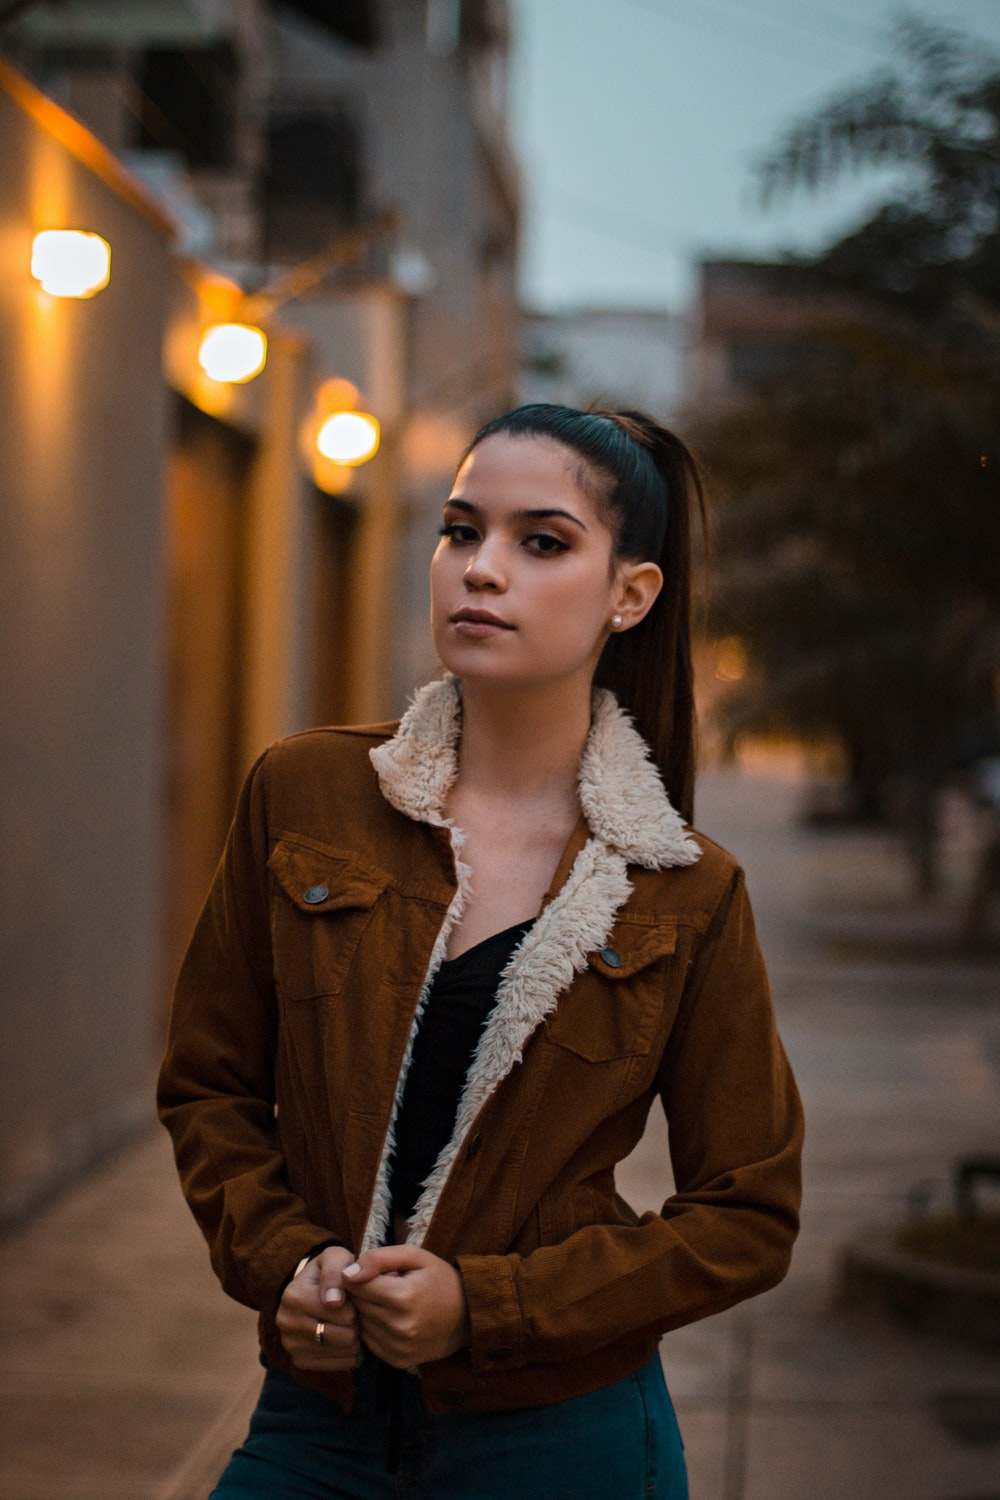 woman holding brown coat during daytime